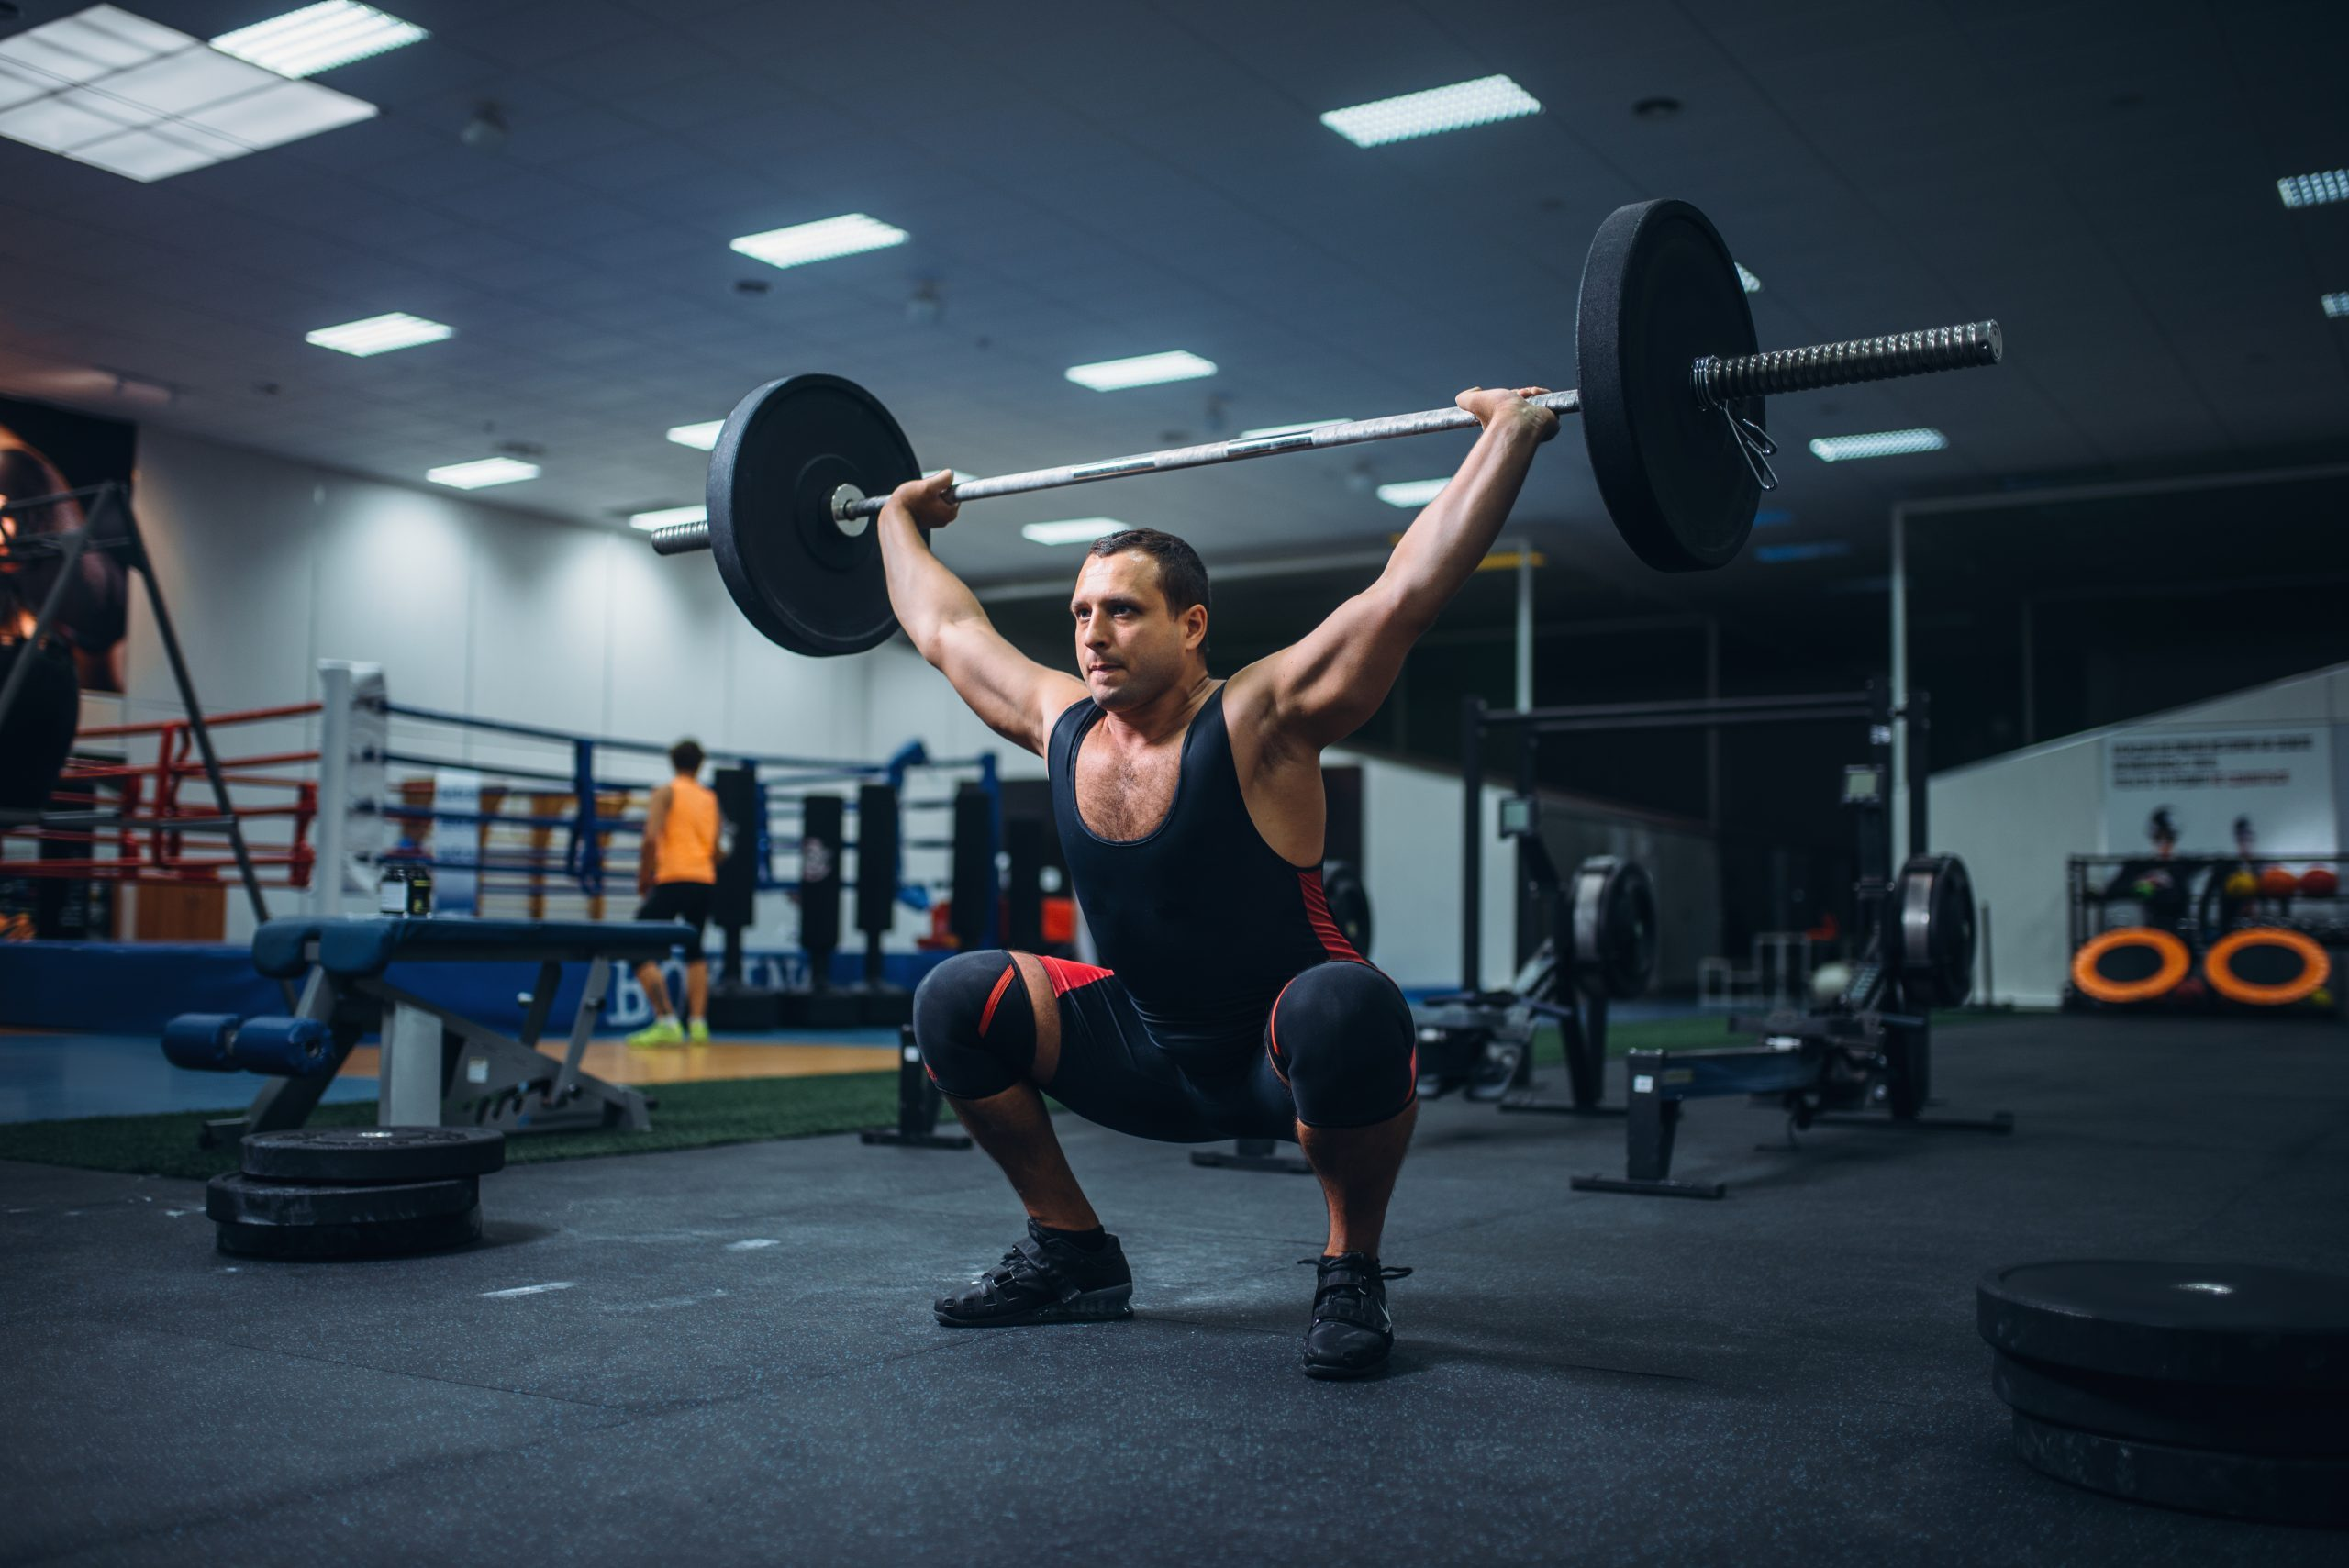 Strong male powerlifter doing deadlift a barbell in gym. Weightlifting workout, lifting training, athlete works with weight in the sport club